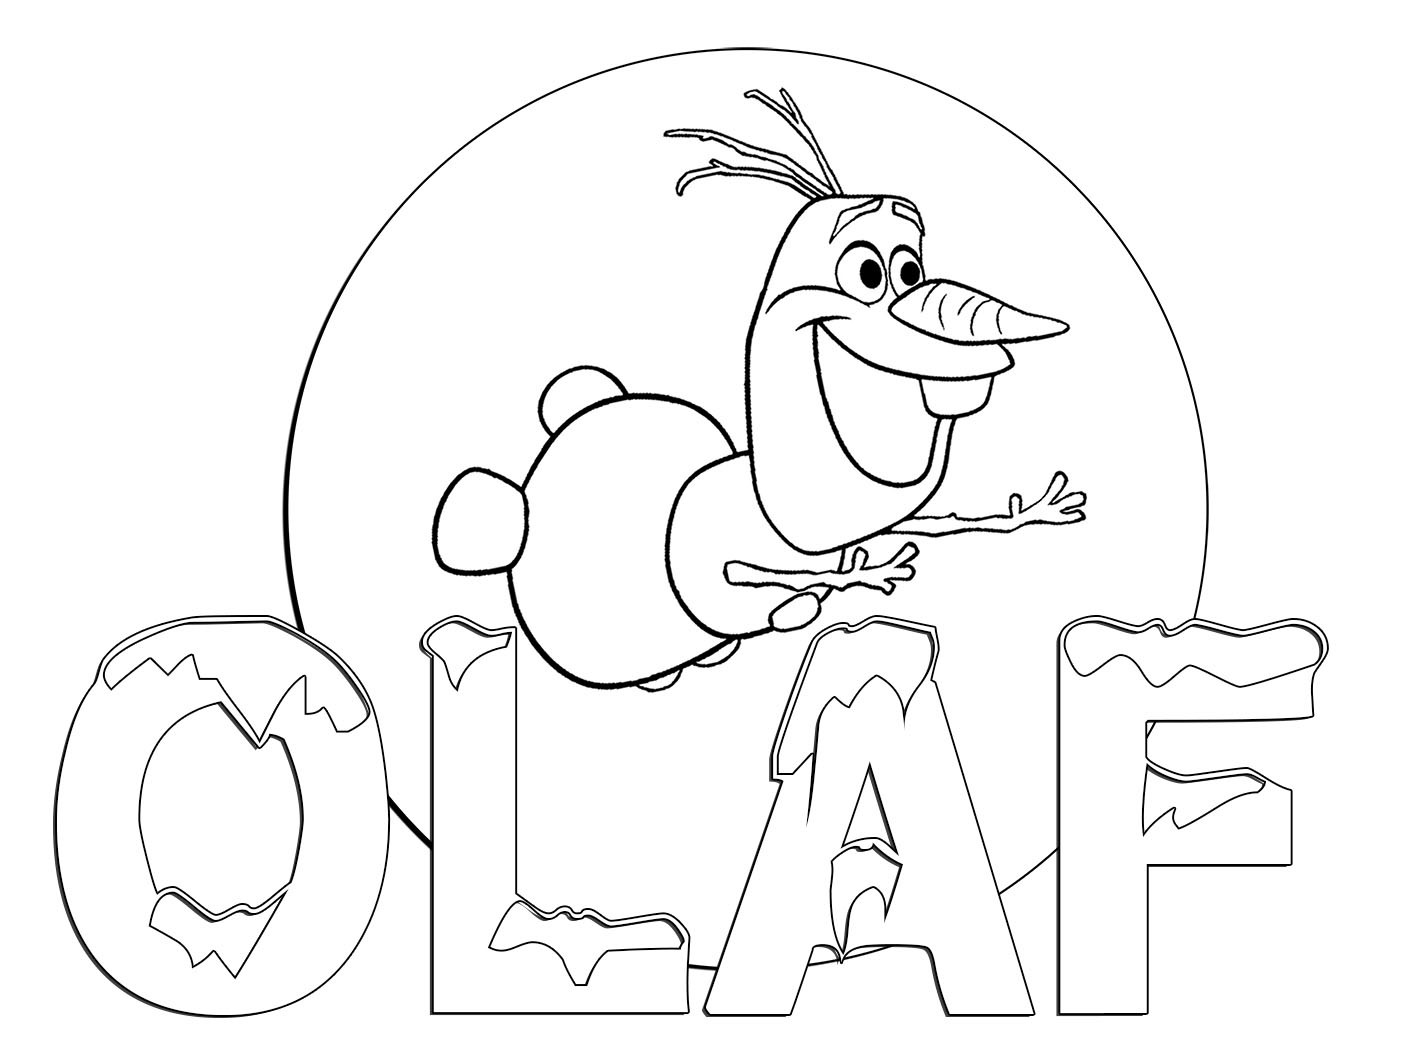 Free Printable Frozen Coloring Pages For Kids Best Olaf Printable Coloring Pages